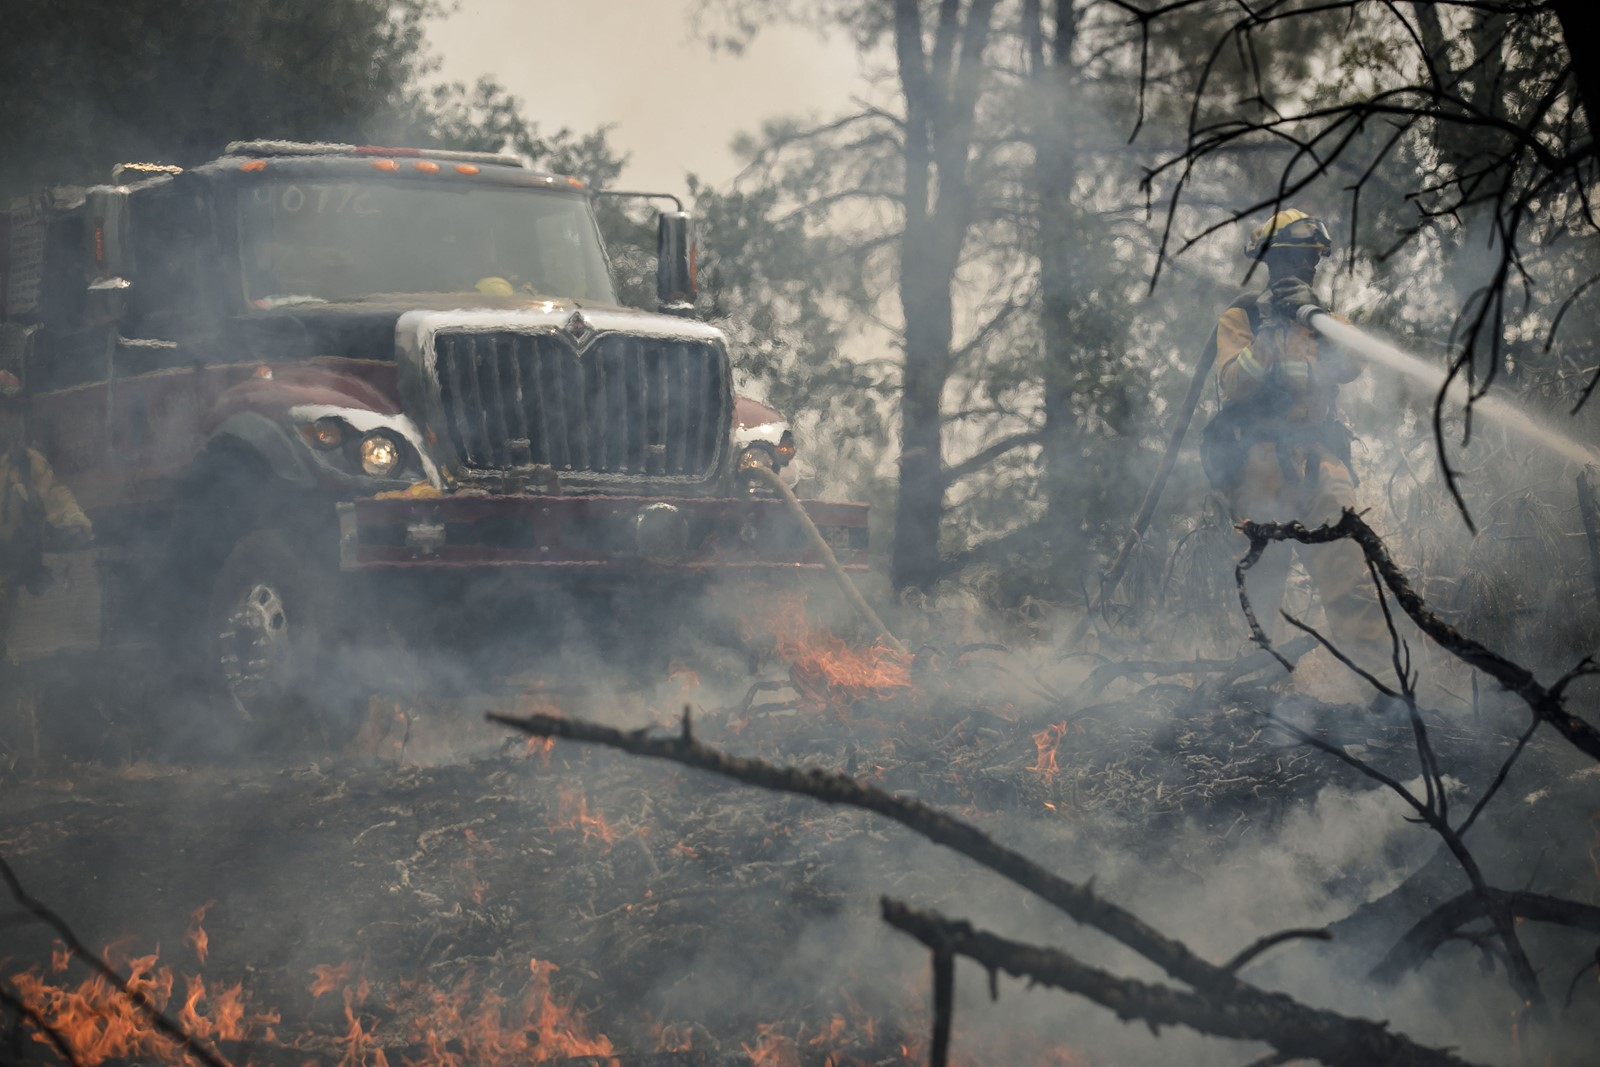 Firefighters work to extinguish a blaze in an area outside Redding. A vehicle mechanical failure on Route 299 is said to have started the fire on Monday. — Photograph: Marcus Yam/Los Angeles Times.